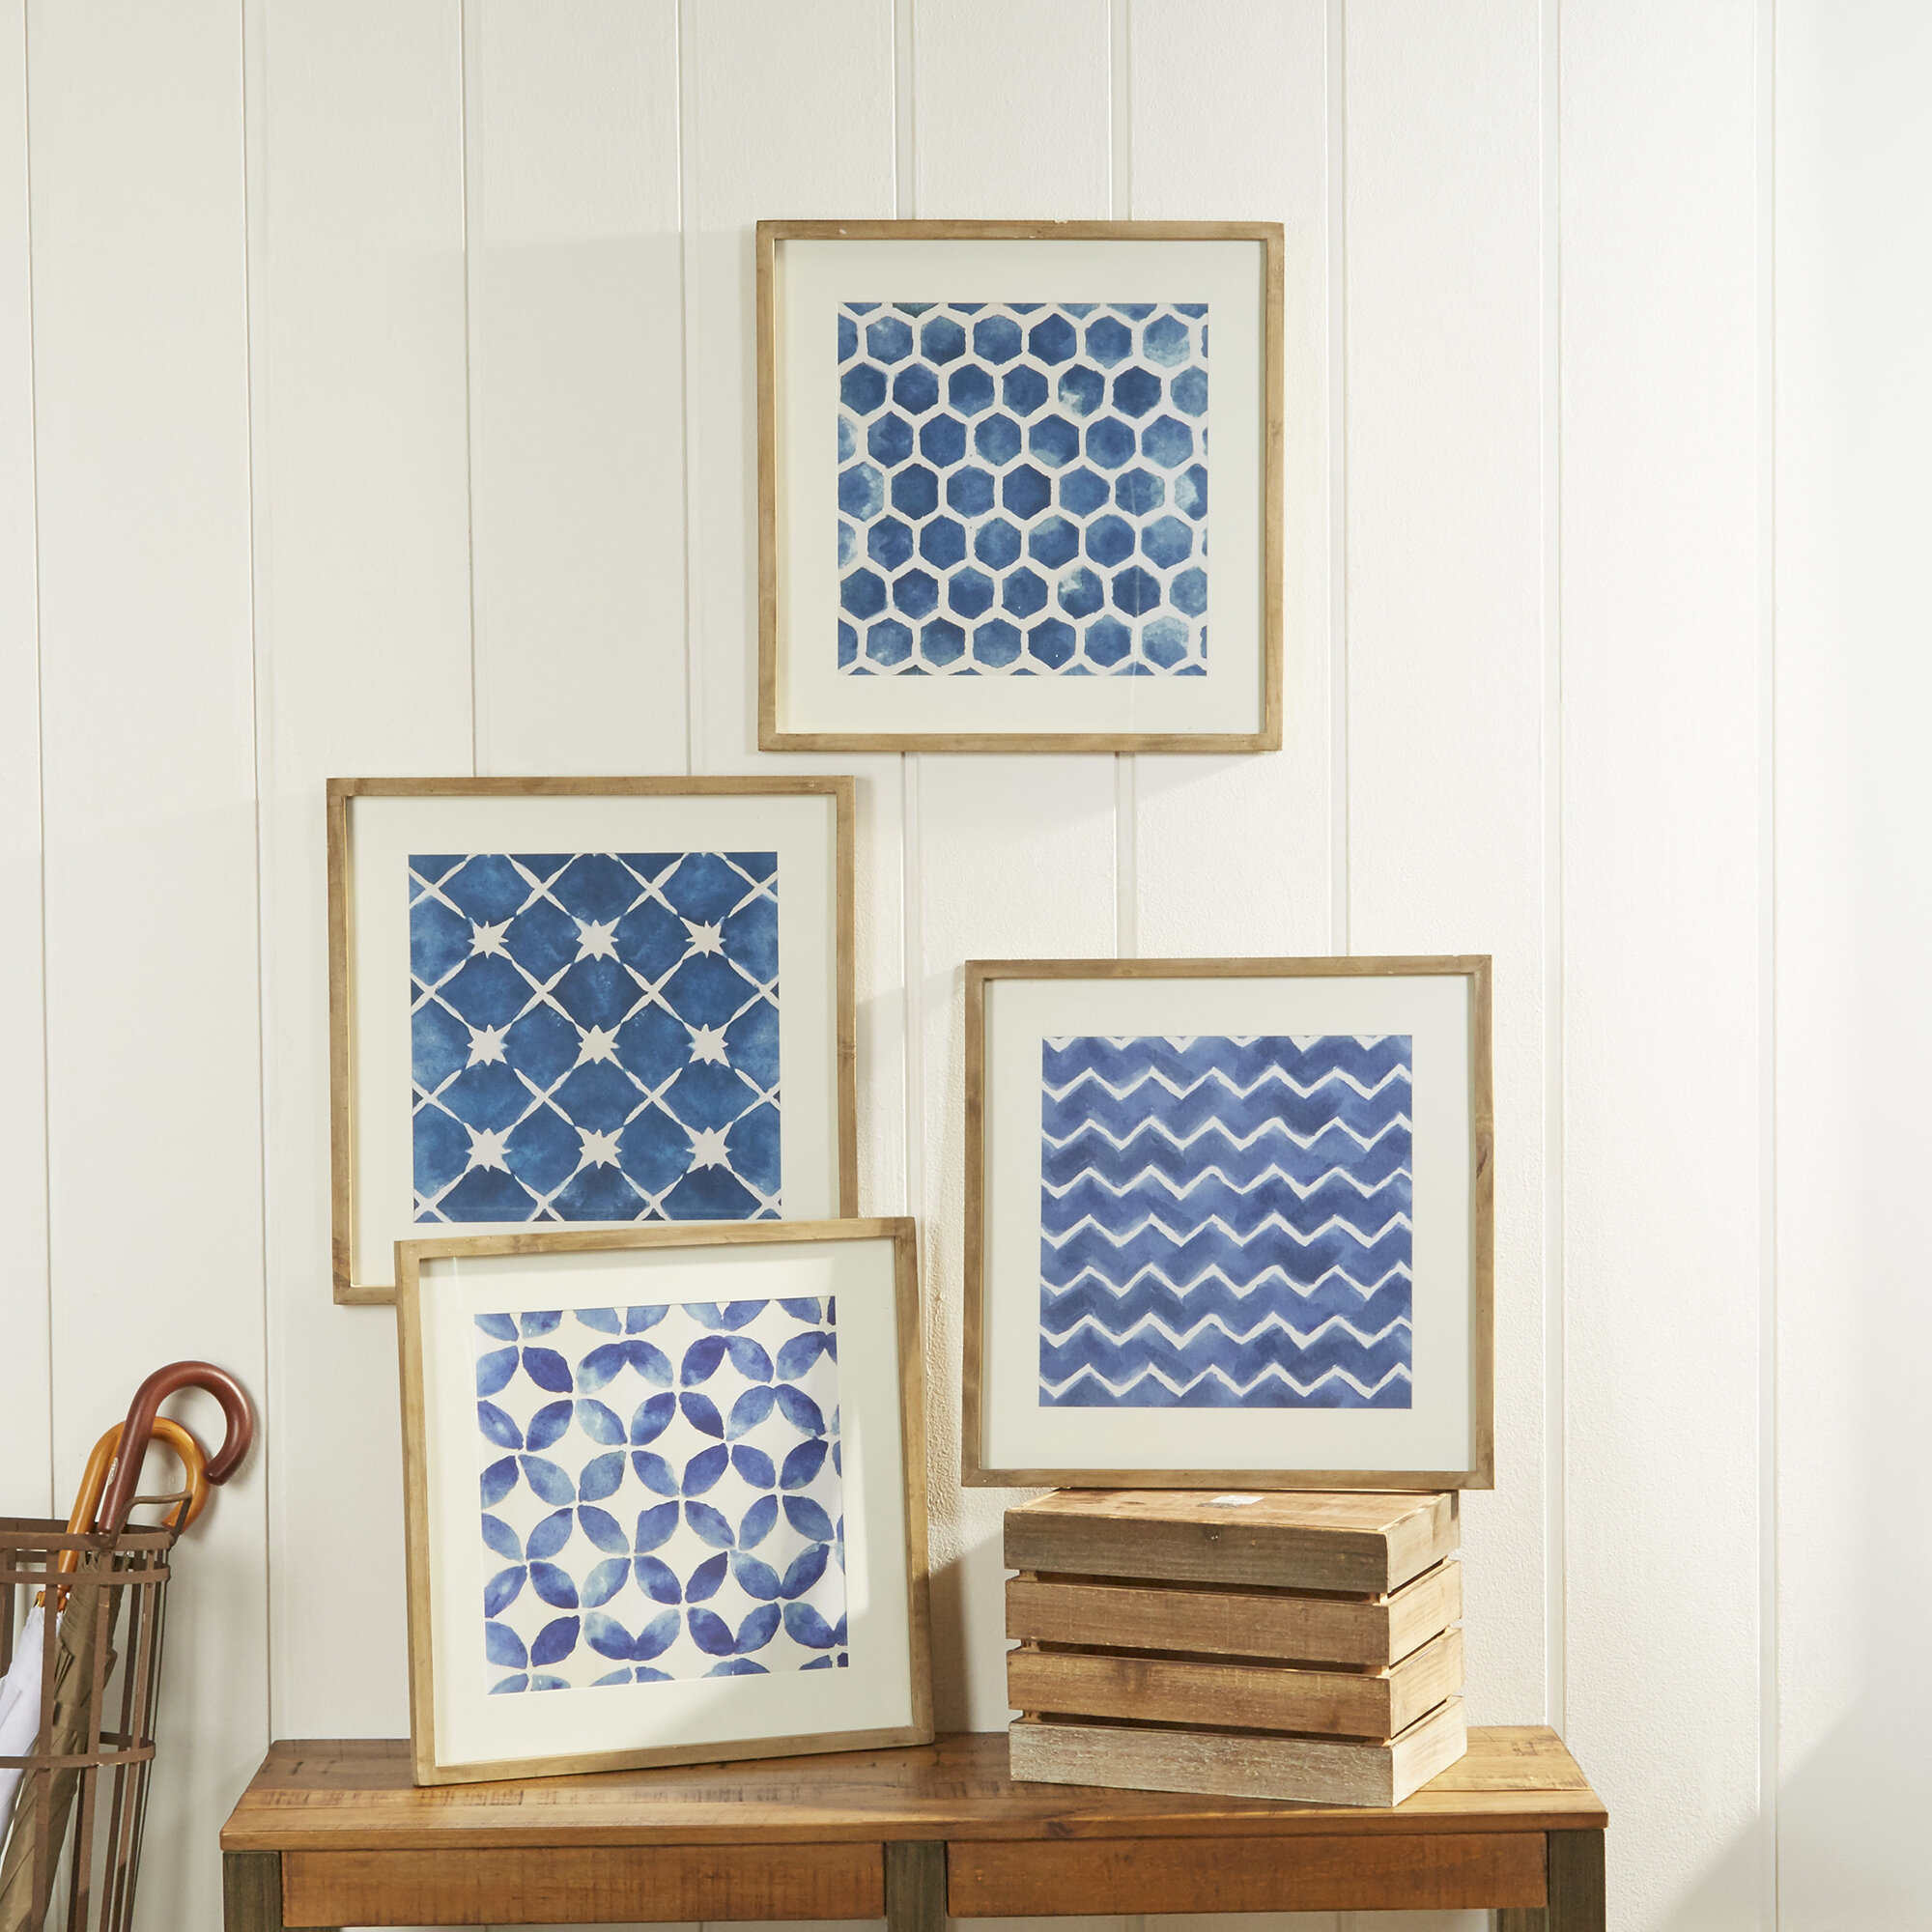 Birch Lane™ Framed Blue Geometric Prints & Reviews | Birch Lane